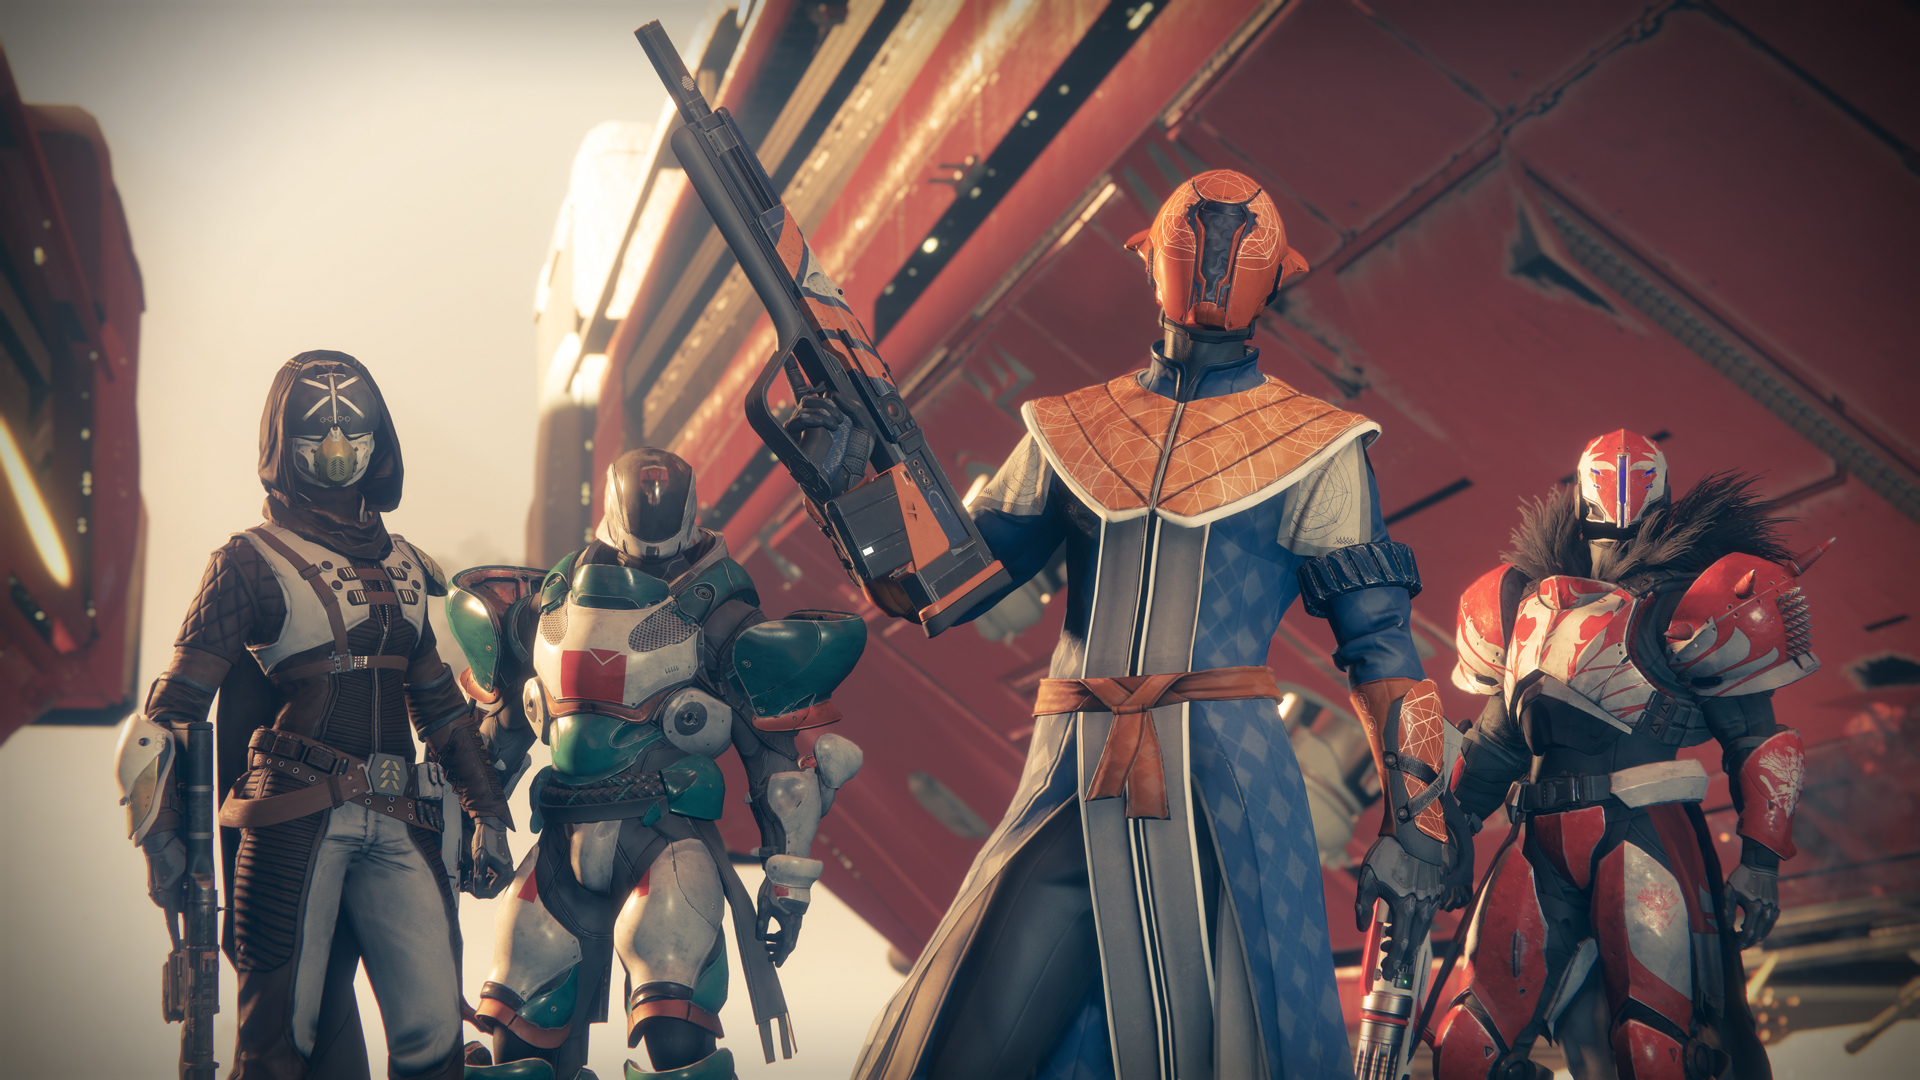 Destiny 2 hands-on preview and interview – 'This is something that people really have a deep connection to'